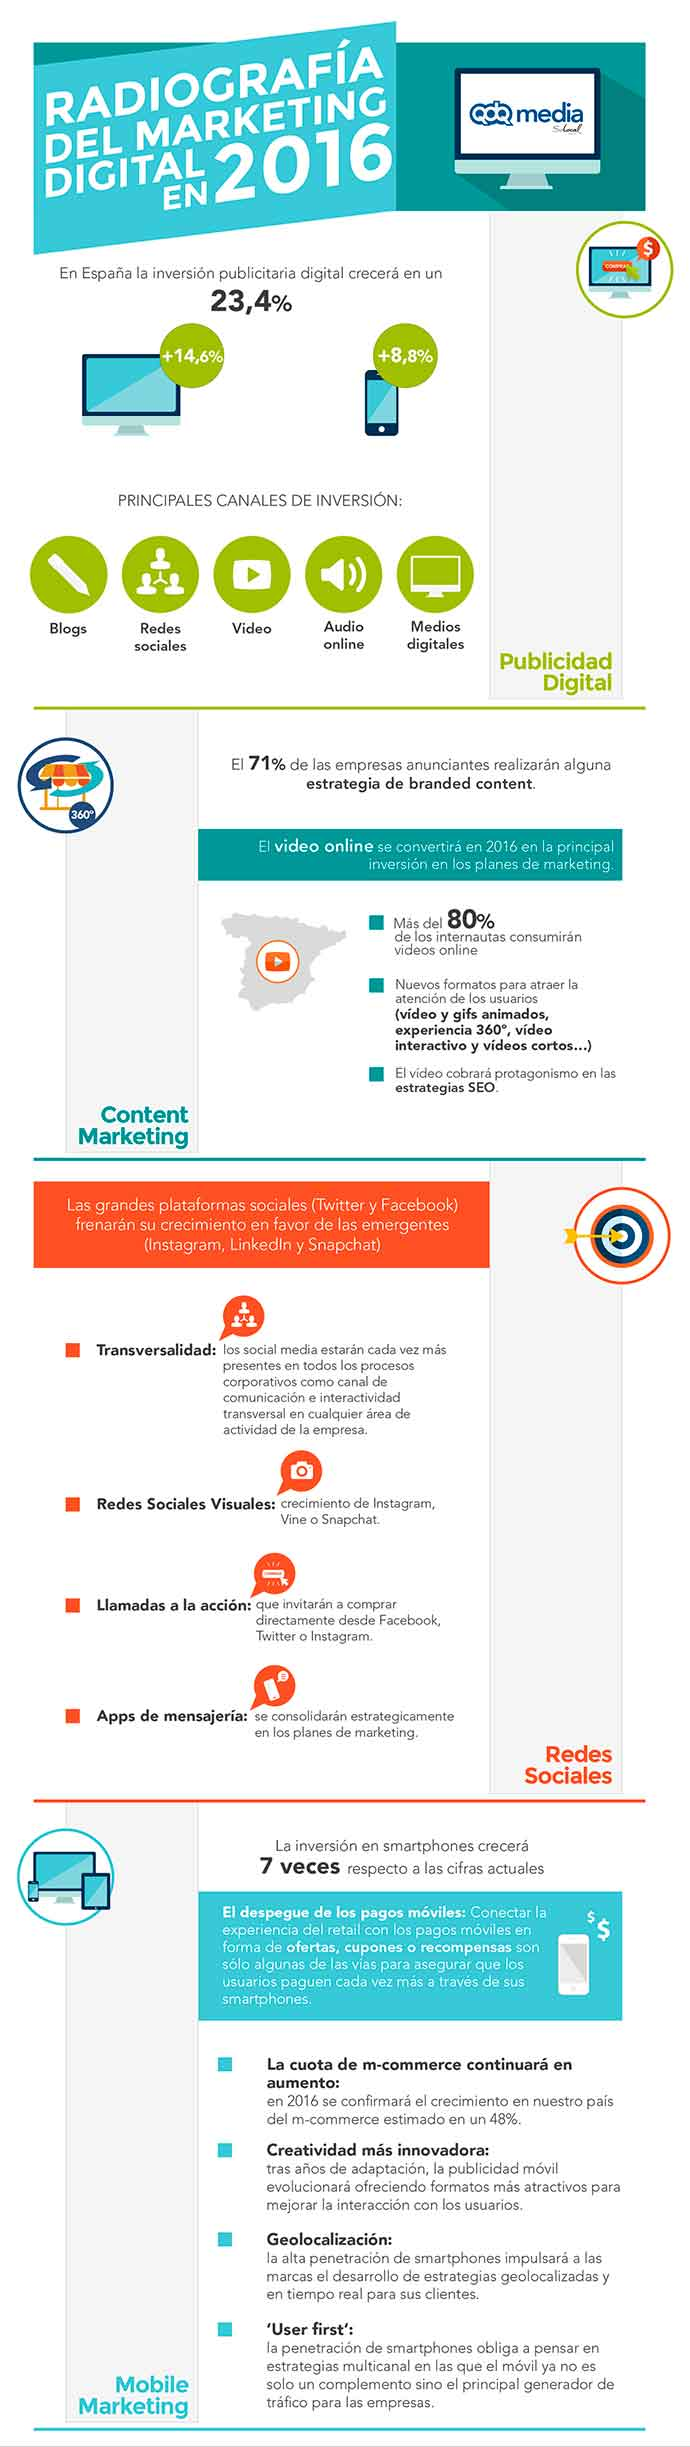 infografía marketing digital 2016